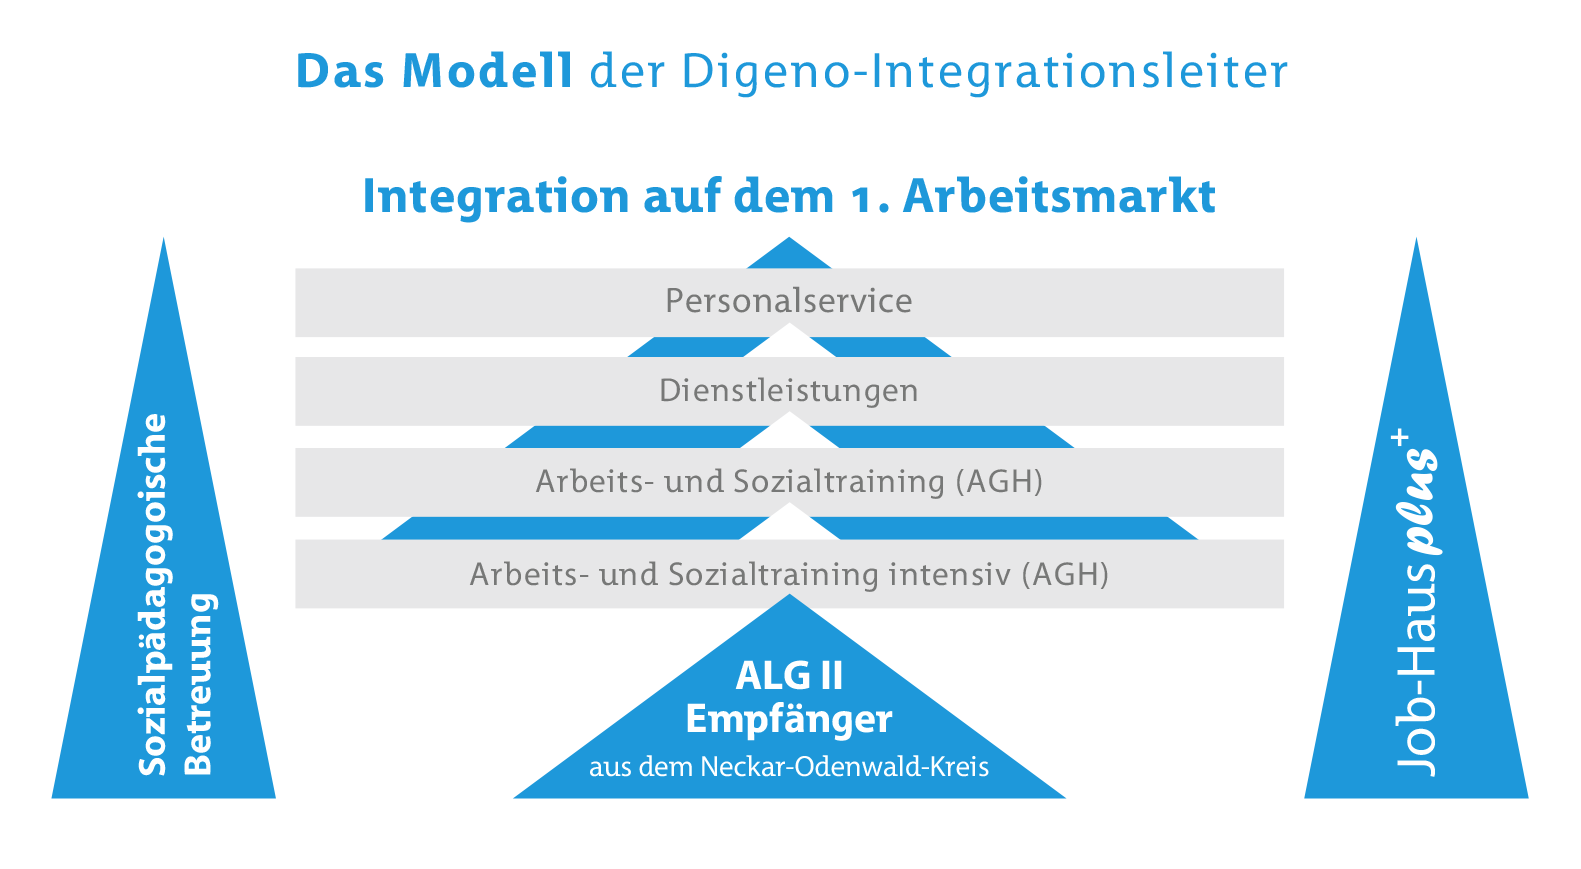 digeno integrationsleiter